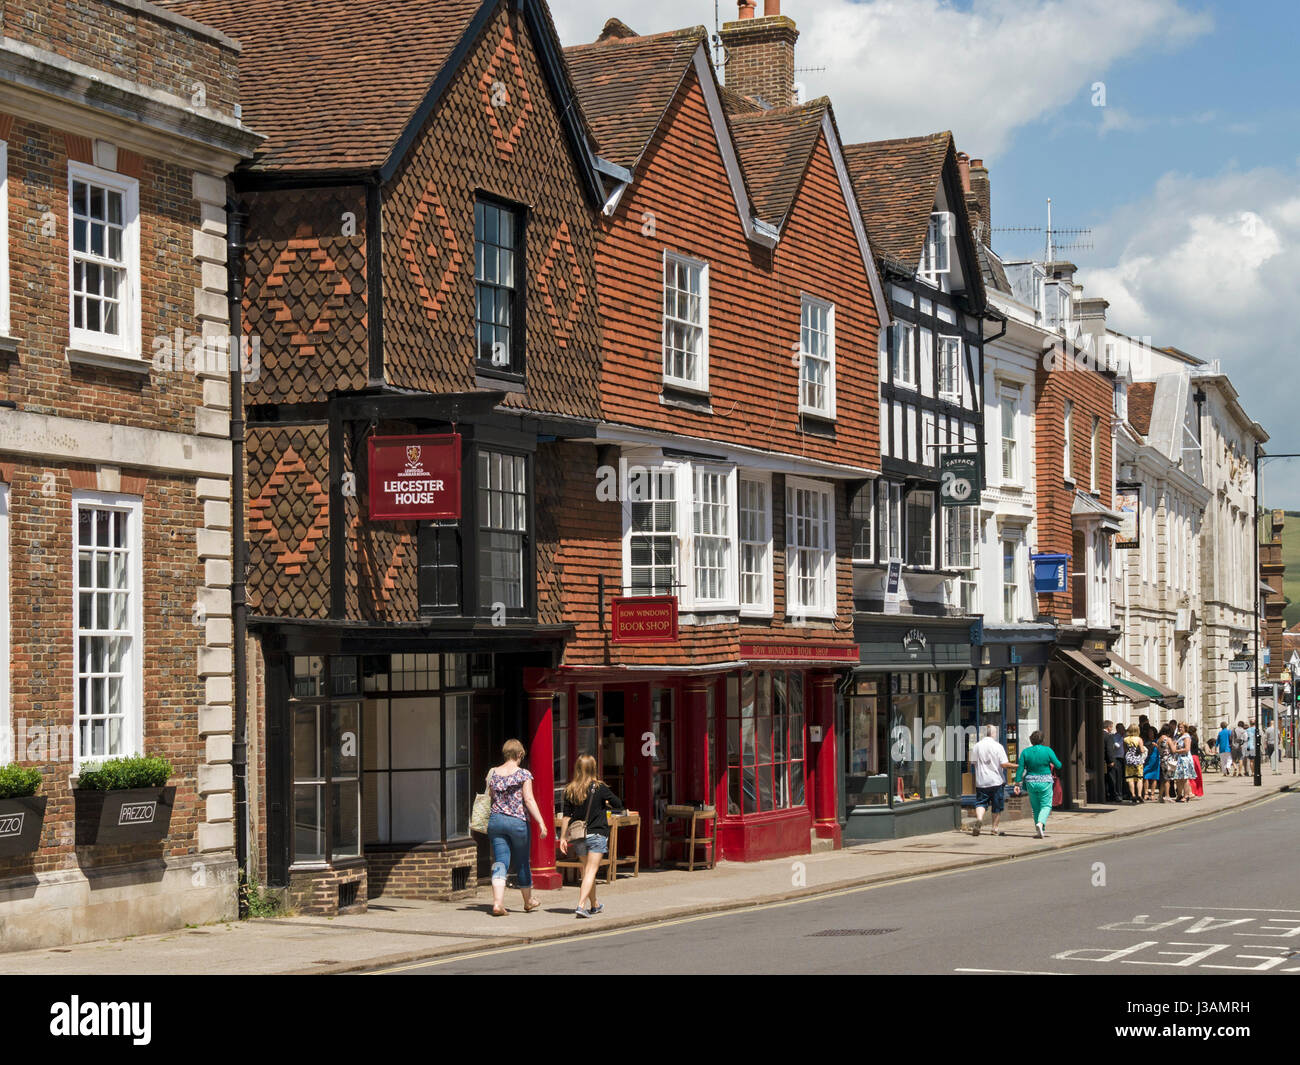 Old traditional shopfronts on Lewes High Street, East Sussex, England, UK - Stock Image